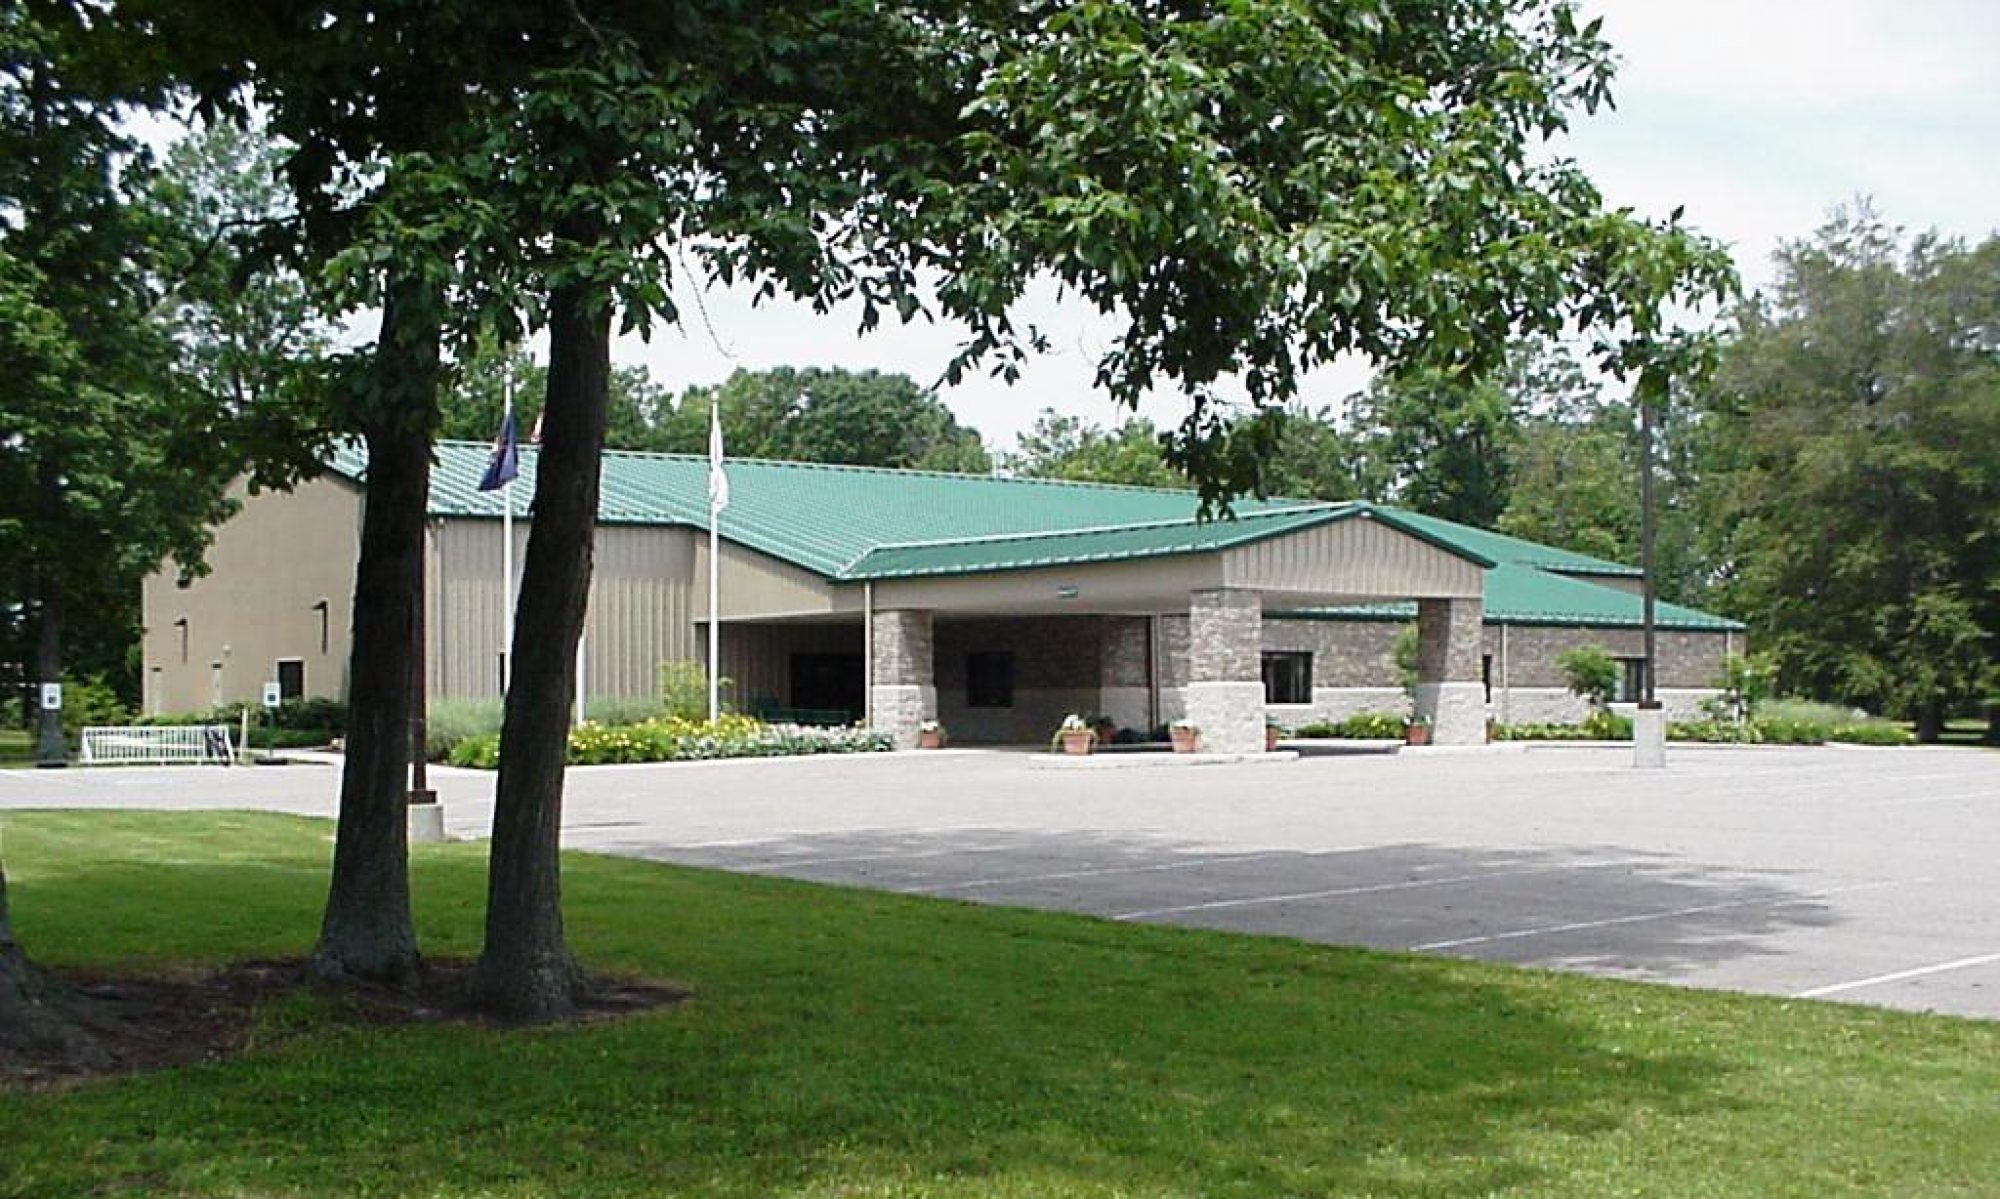 Wells County 4-H Community Center